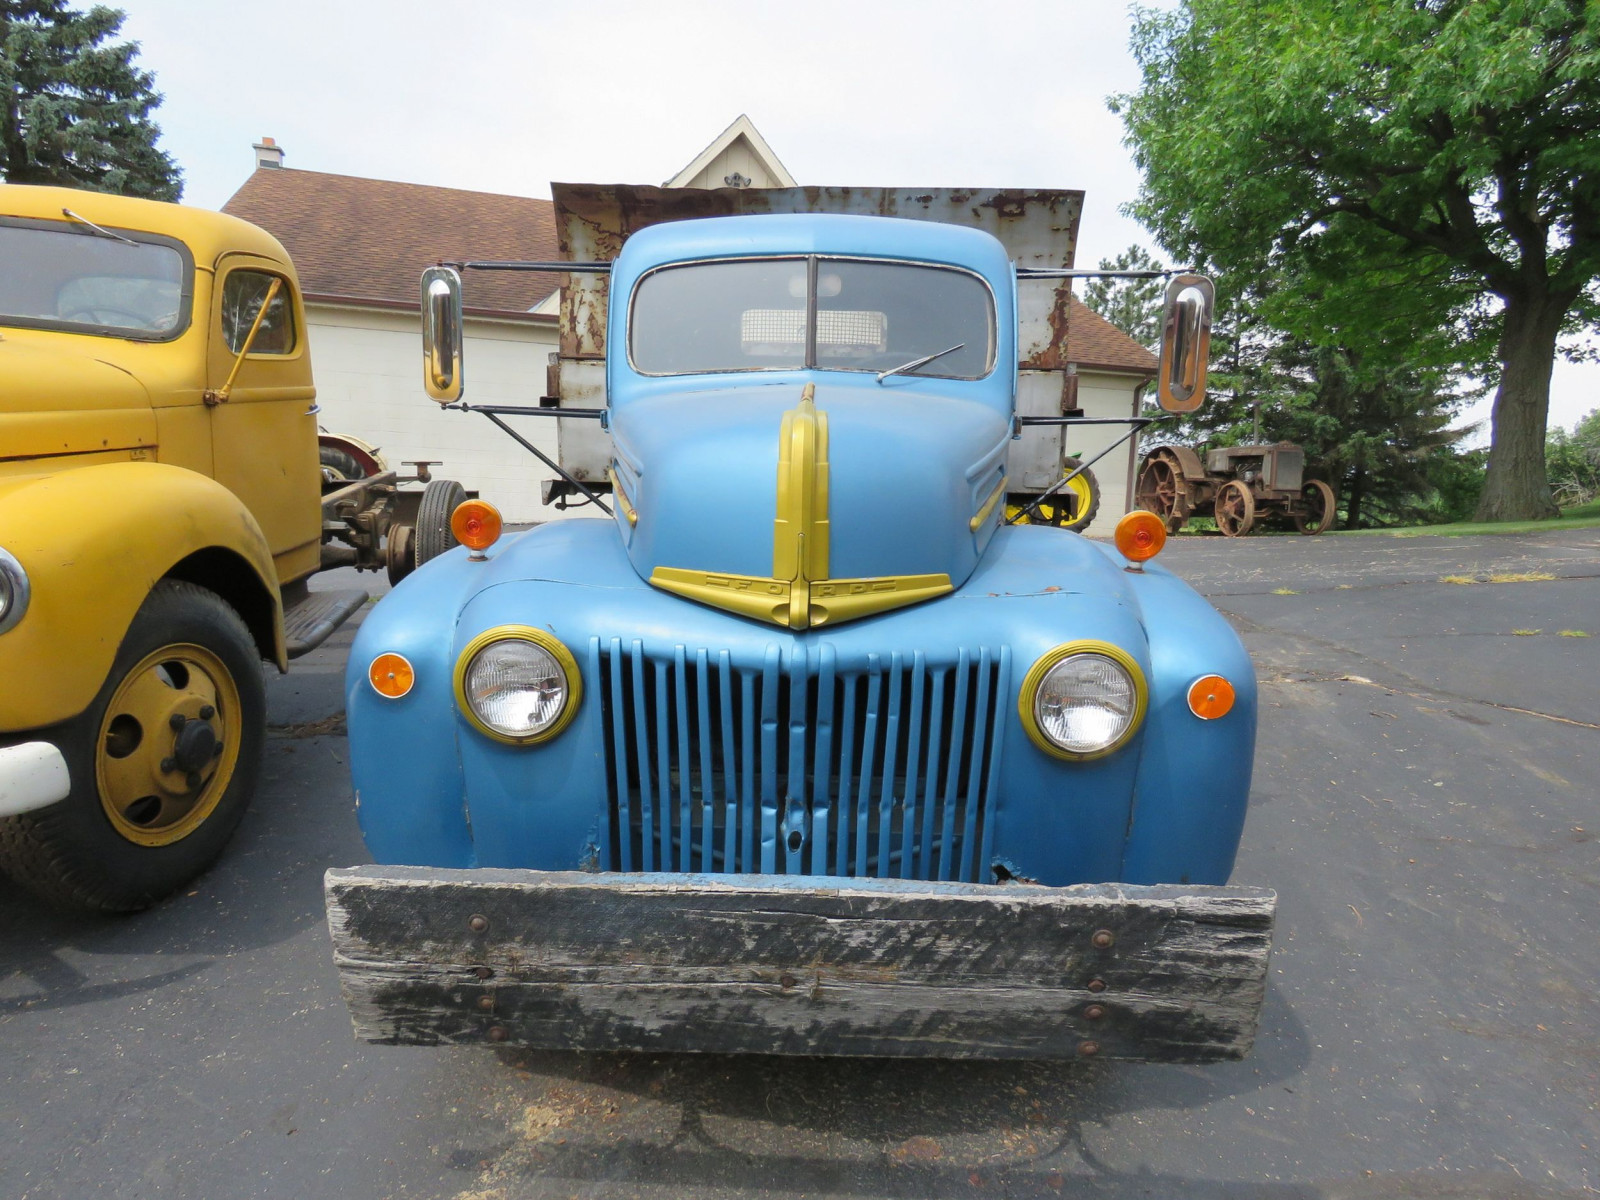 1946 Ford Dump Truck - Image 2